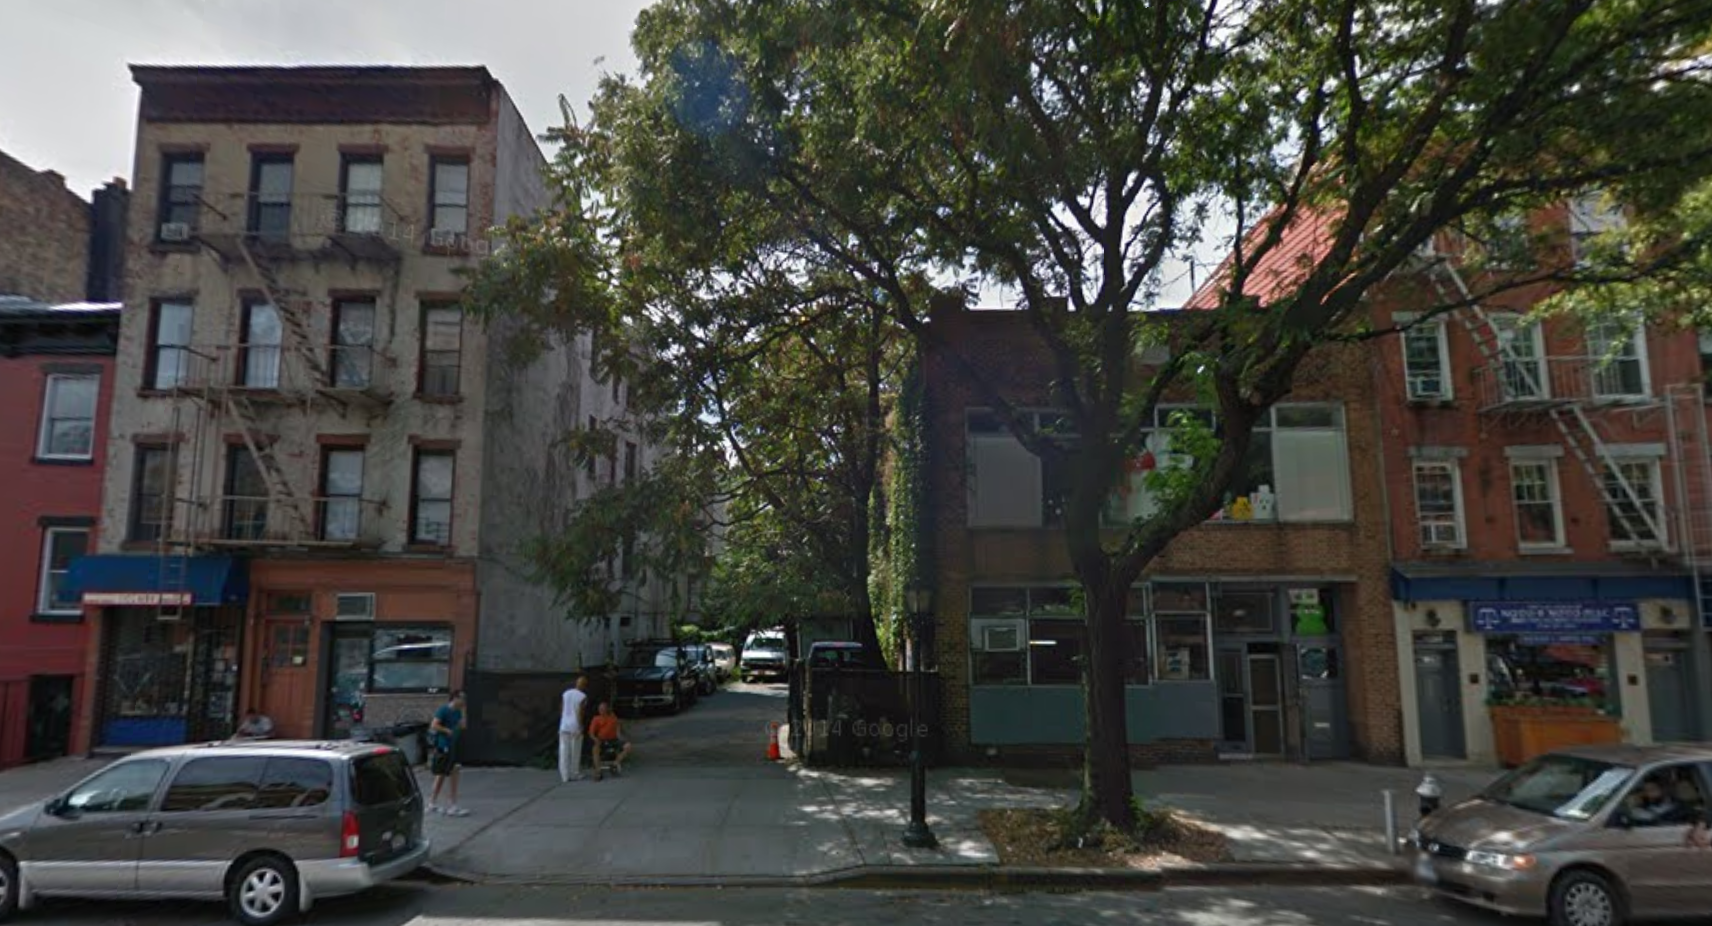 330 Atlantic Avenue, image via Google Maps